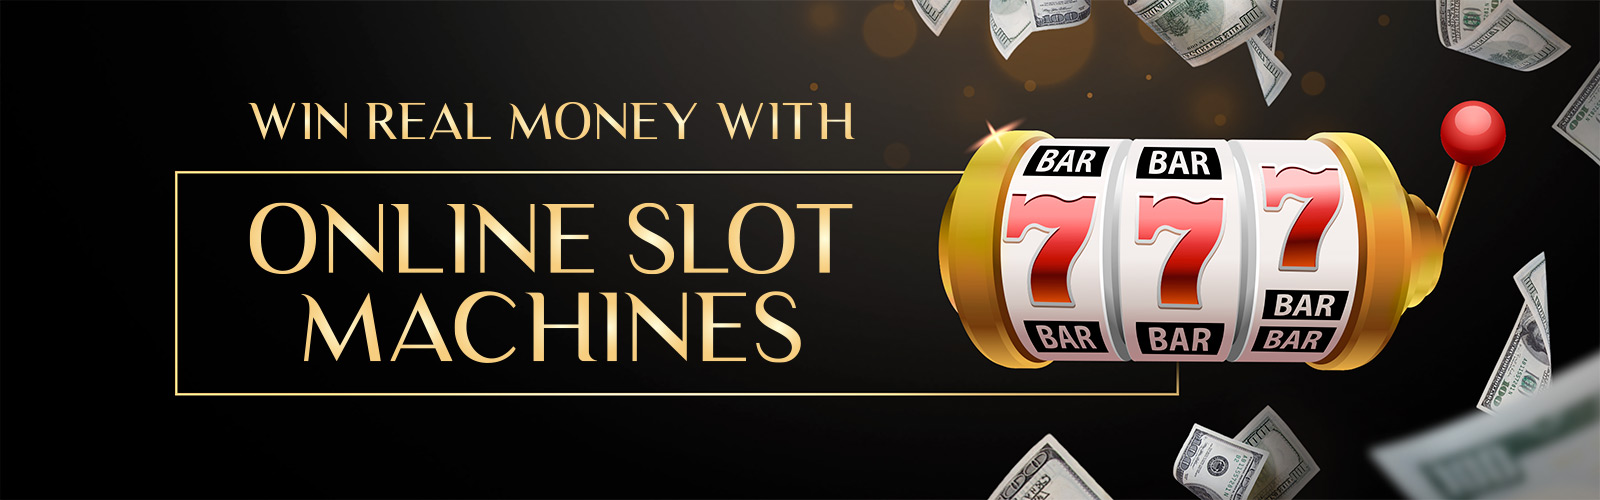 Win Real Money With Online Slot Games